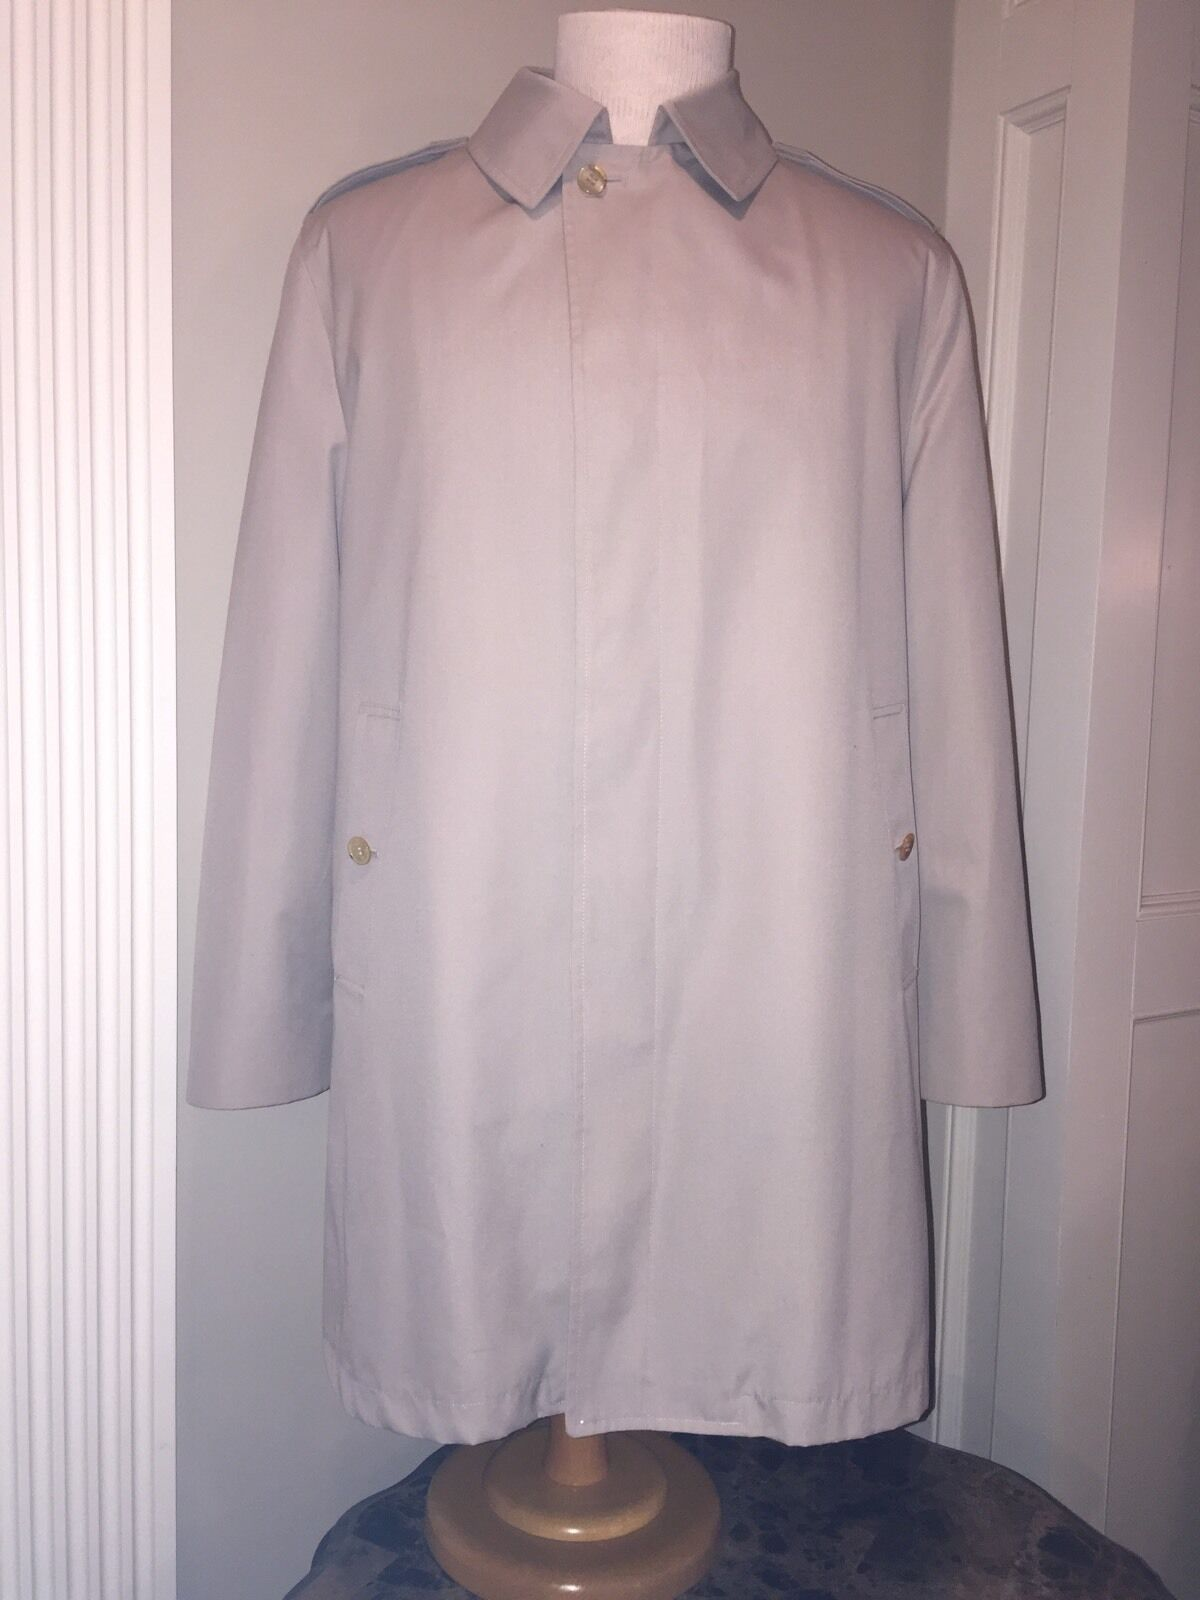 Westchester Classic Trench Coat 42 L Vintage Removable Lining    MINT Worn ONCE